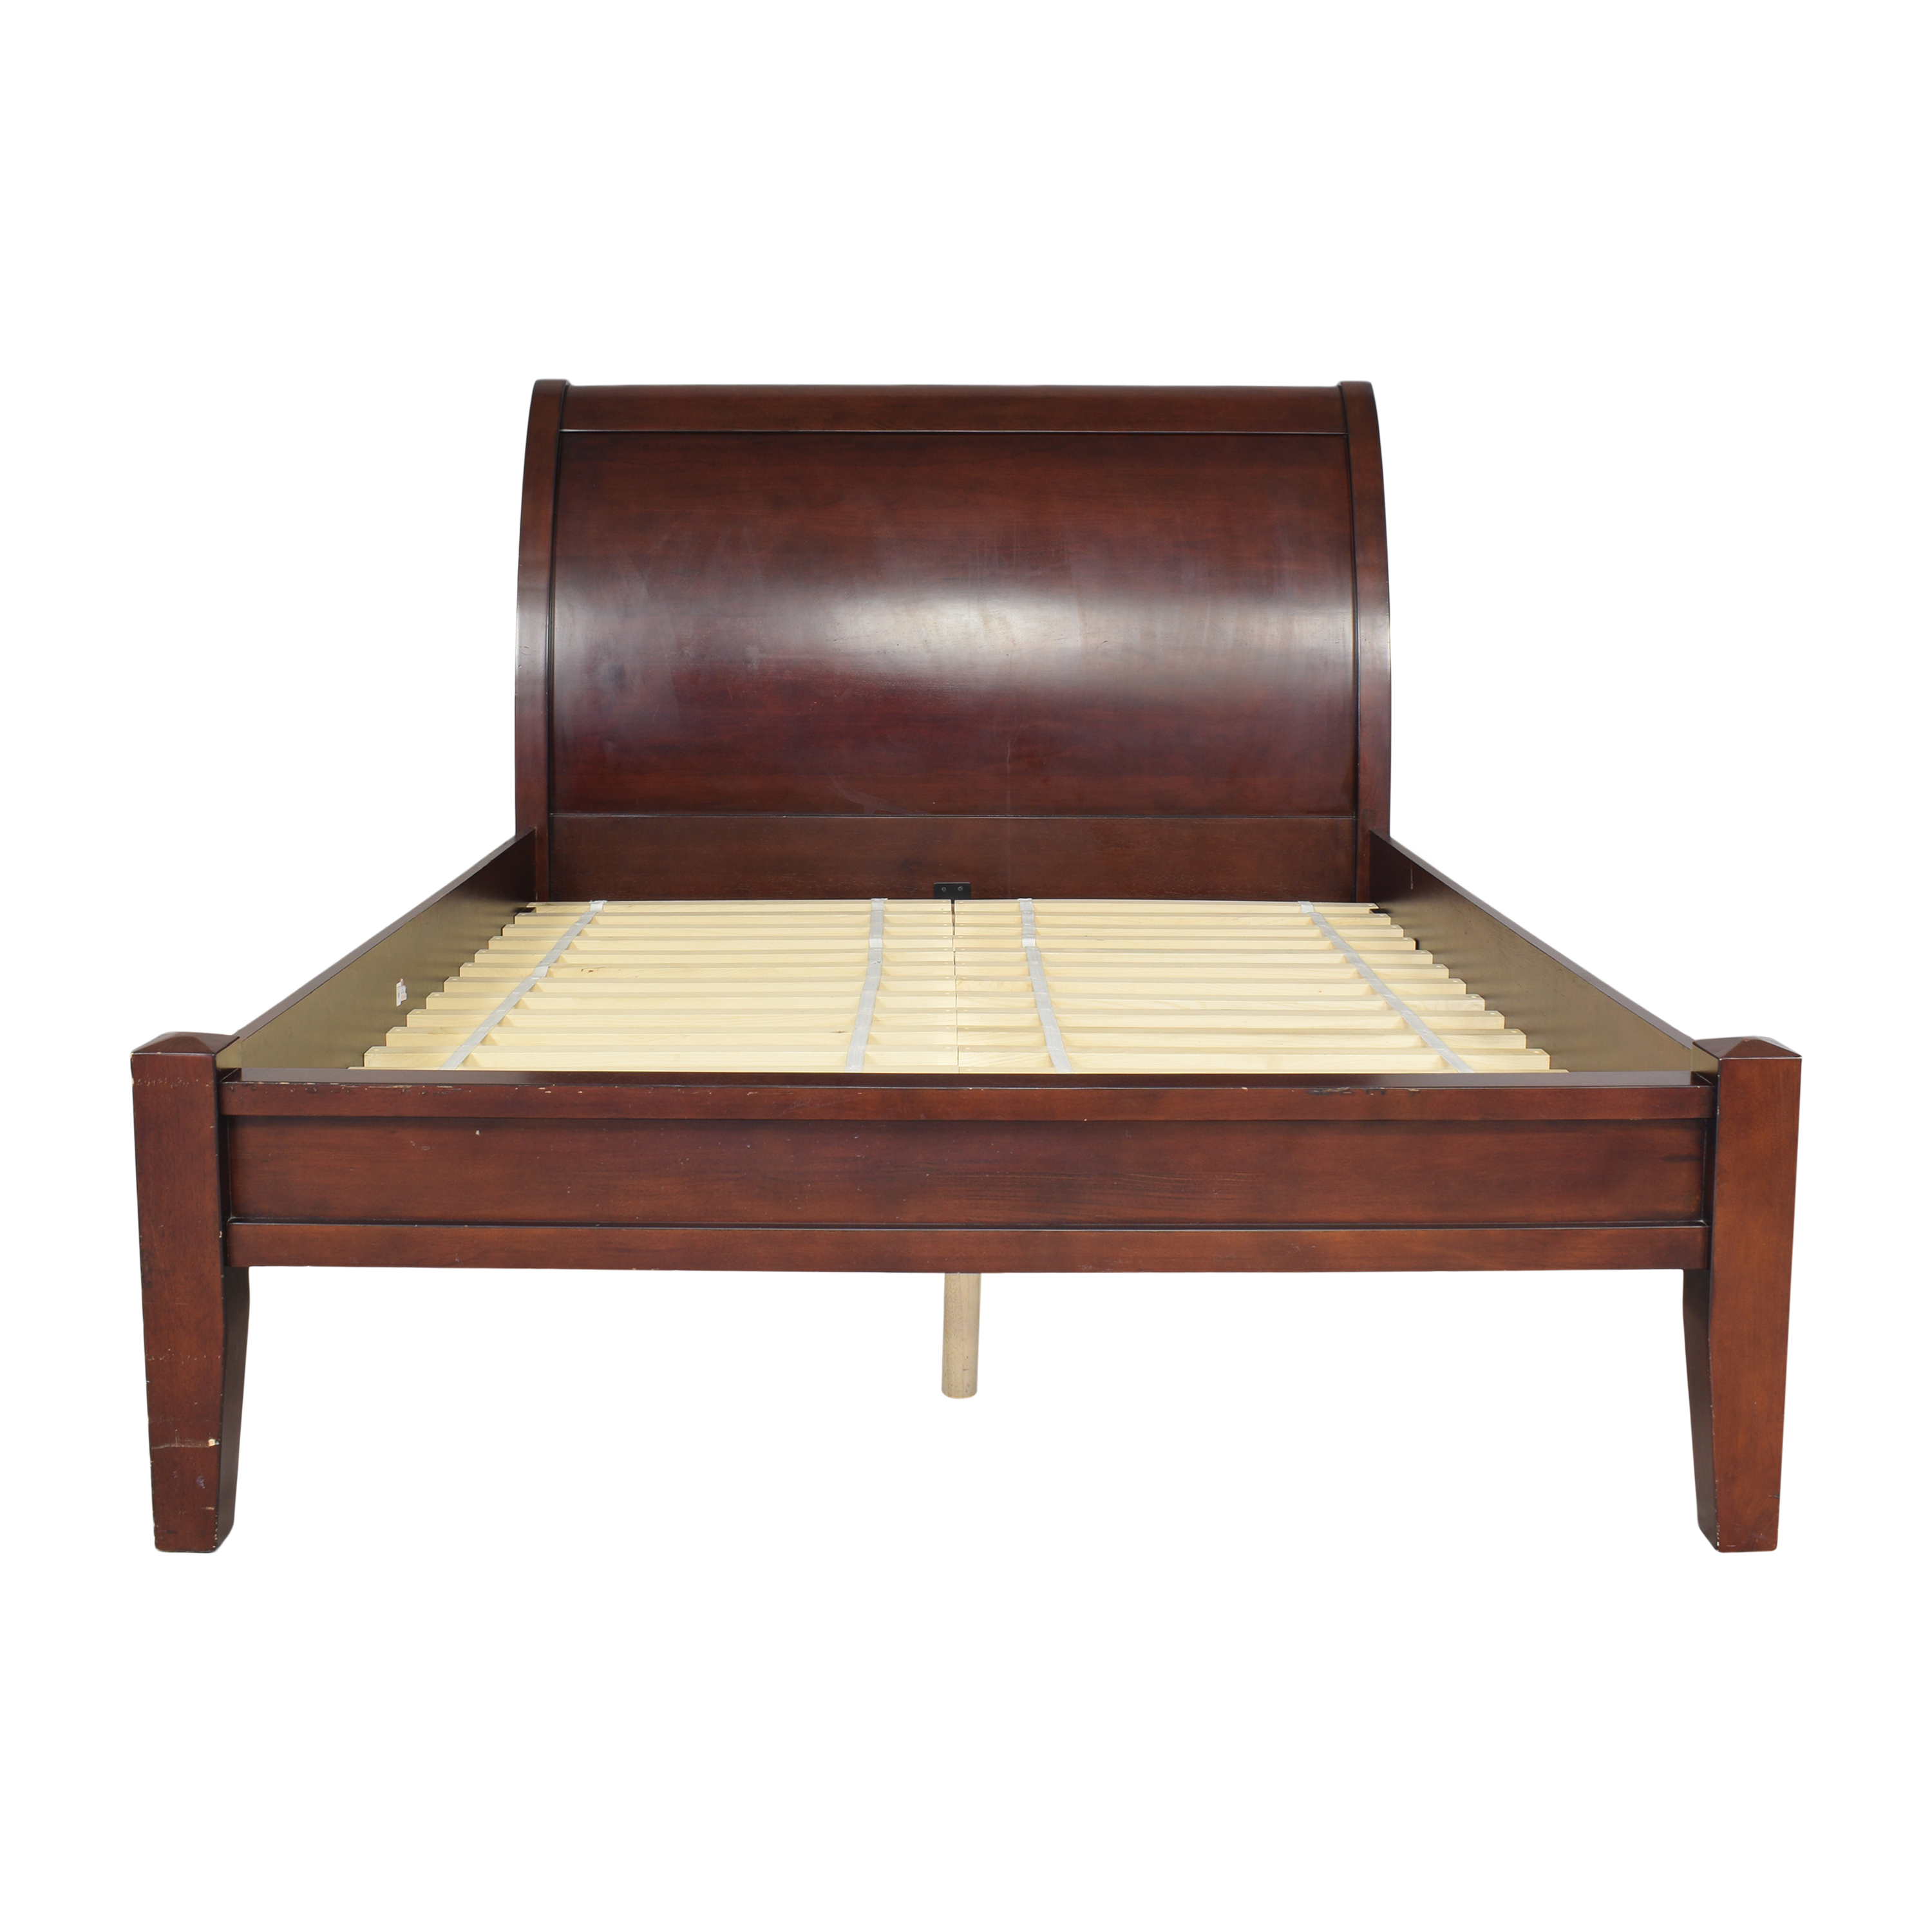 Pottery Barn Pottery Barn Valencia Queen Sleigh Bed second hand